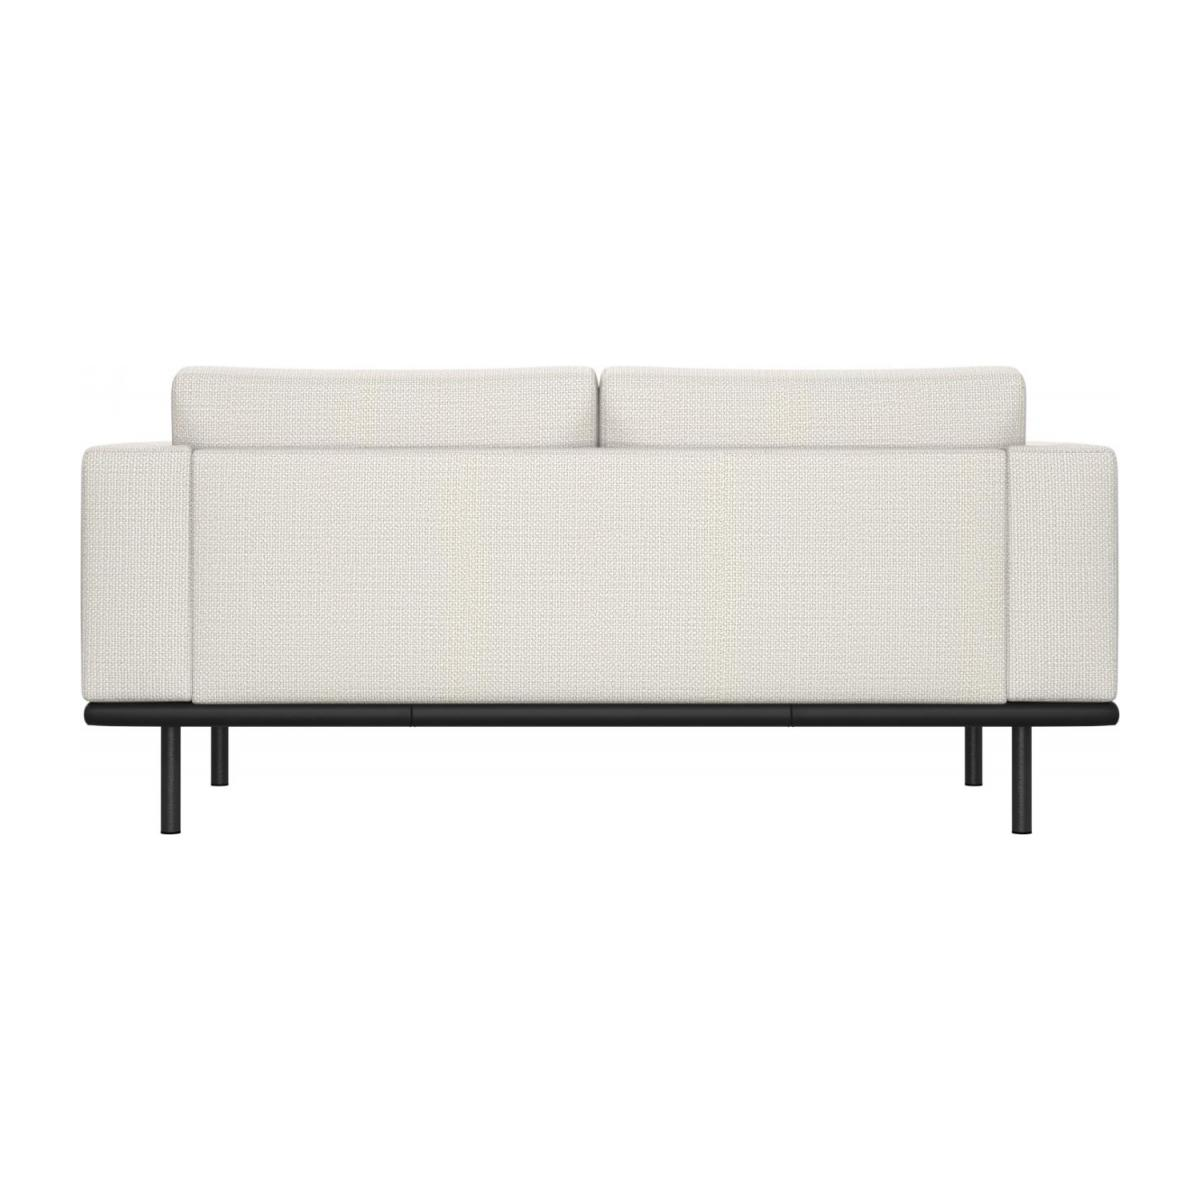 2 seater sofa in Fasoli fabric, snow white with base in black leather n°3